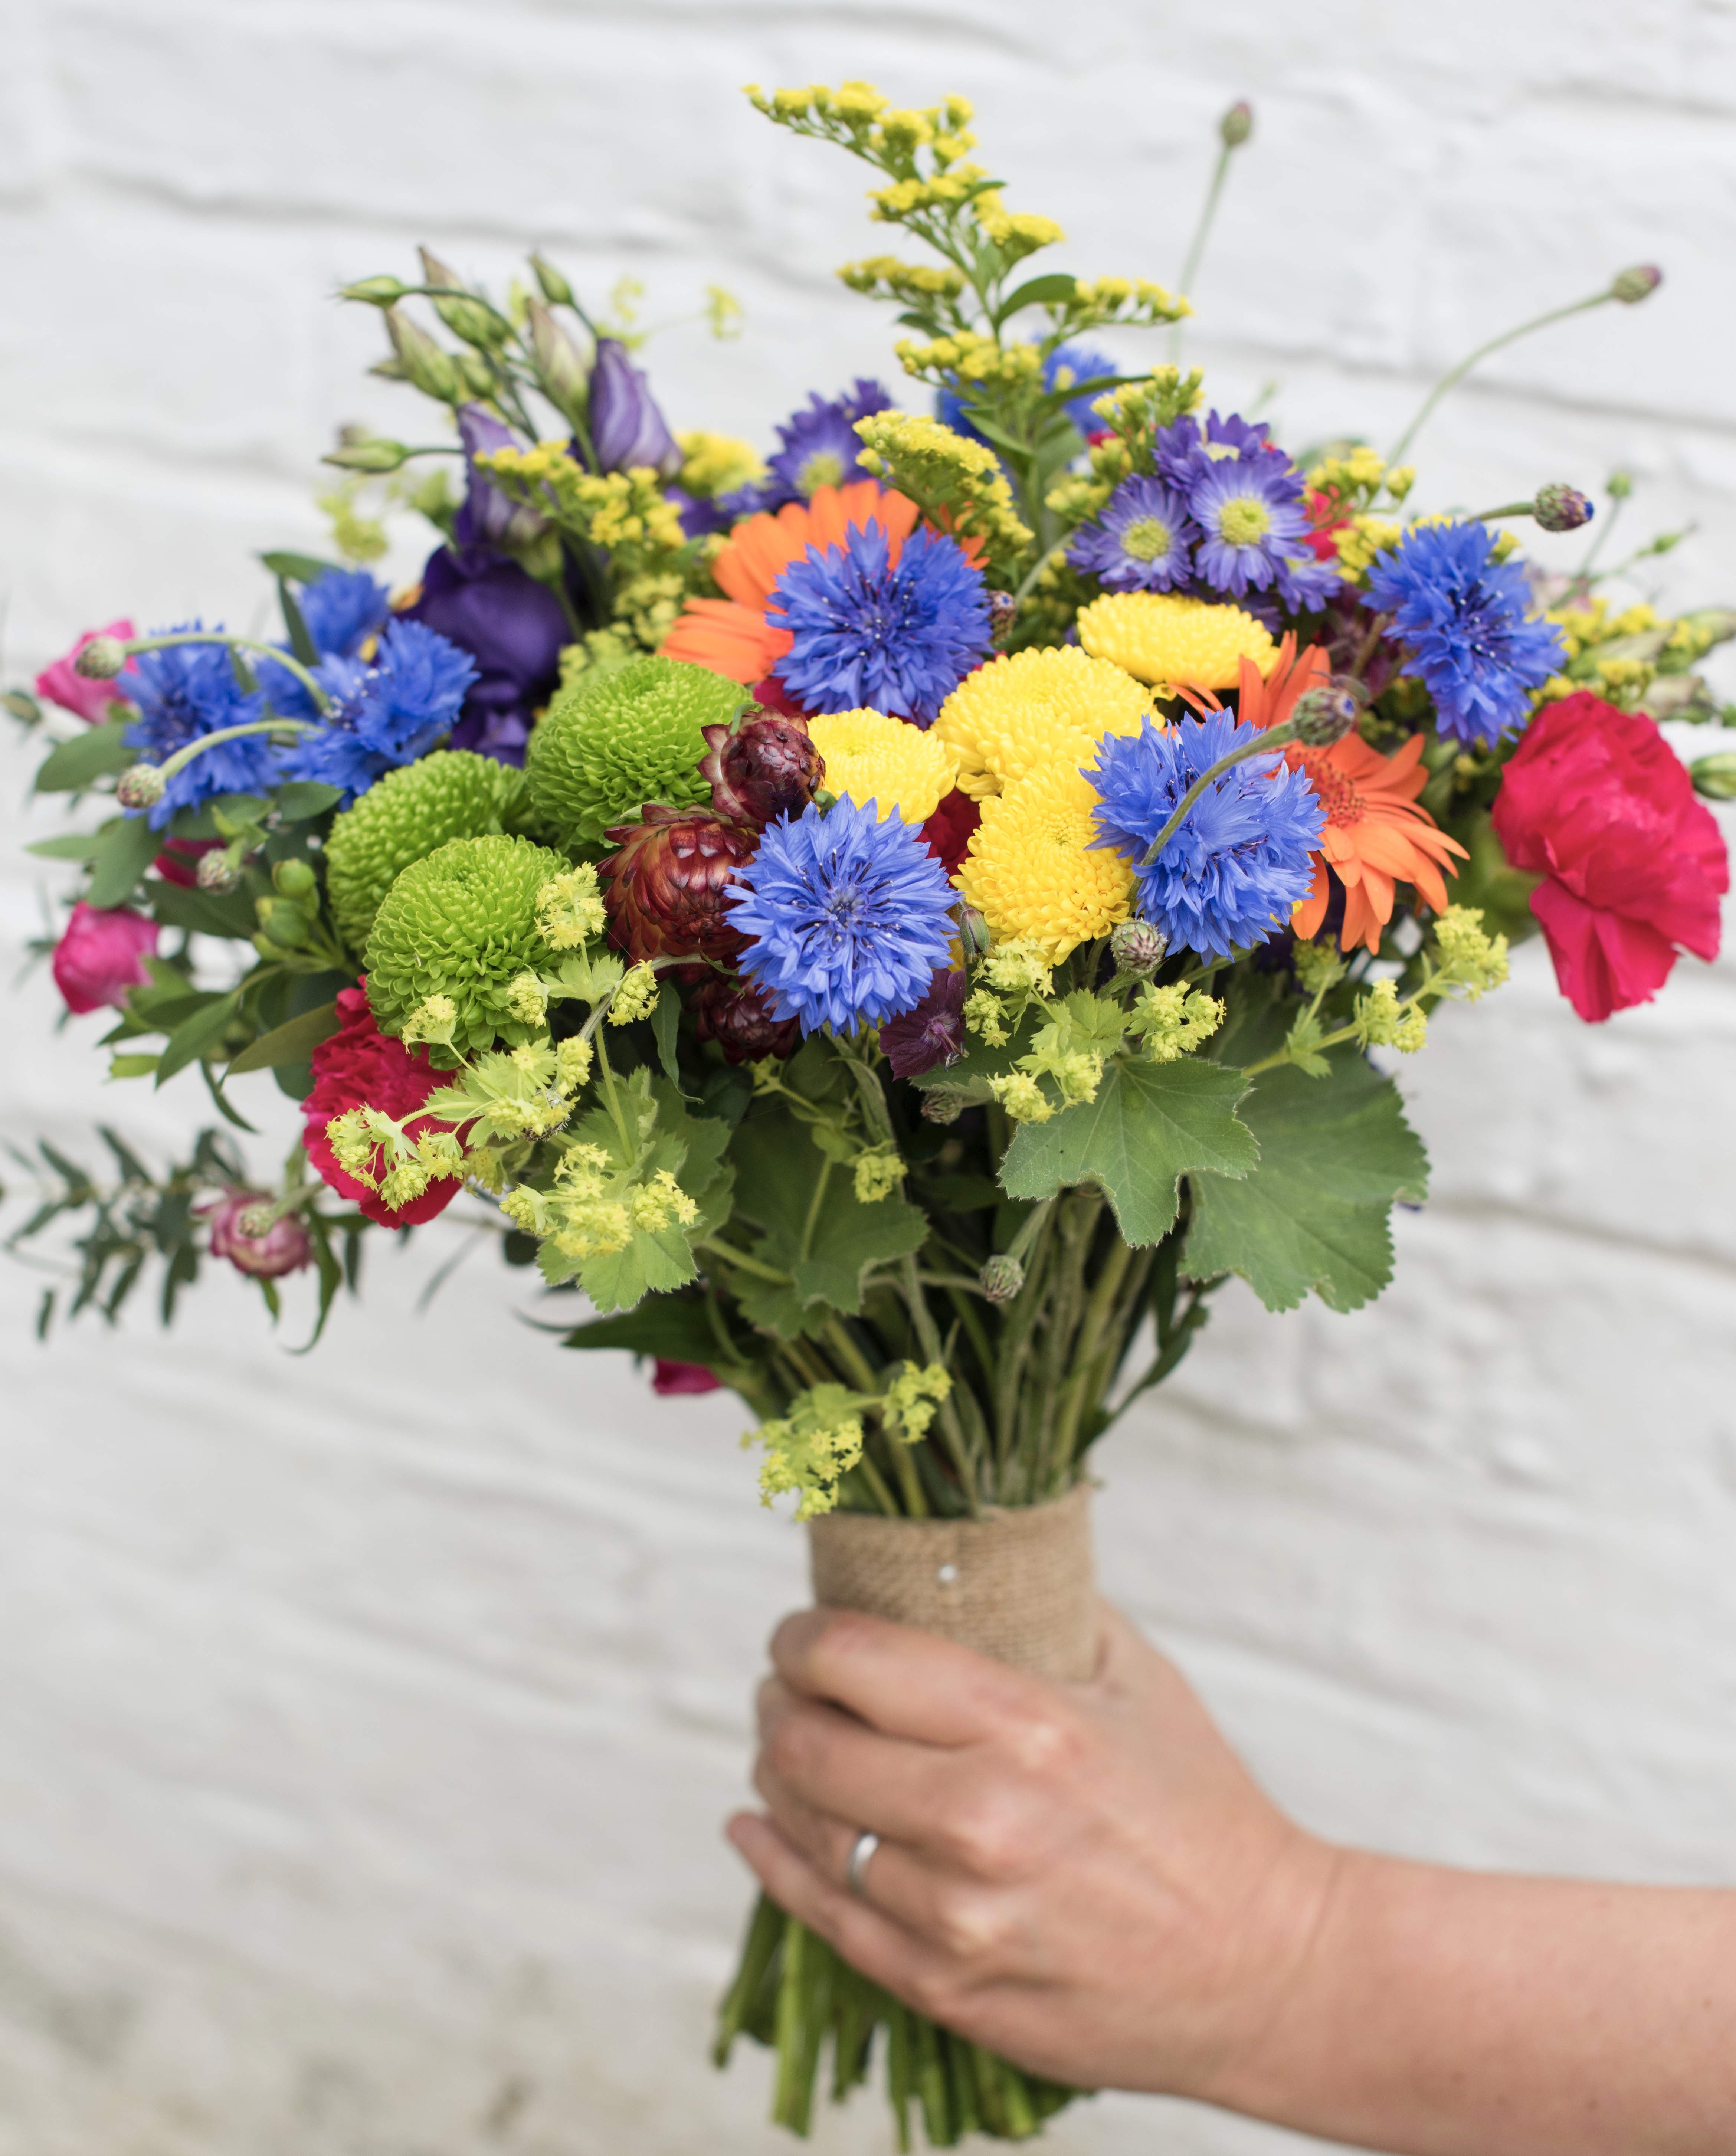 Make the Ultimate Mothers Day Bouquet Workshop- Saturday March 30th at 15:00-17:00